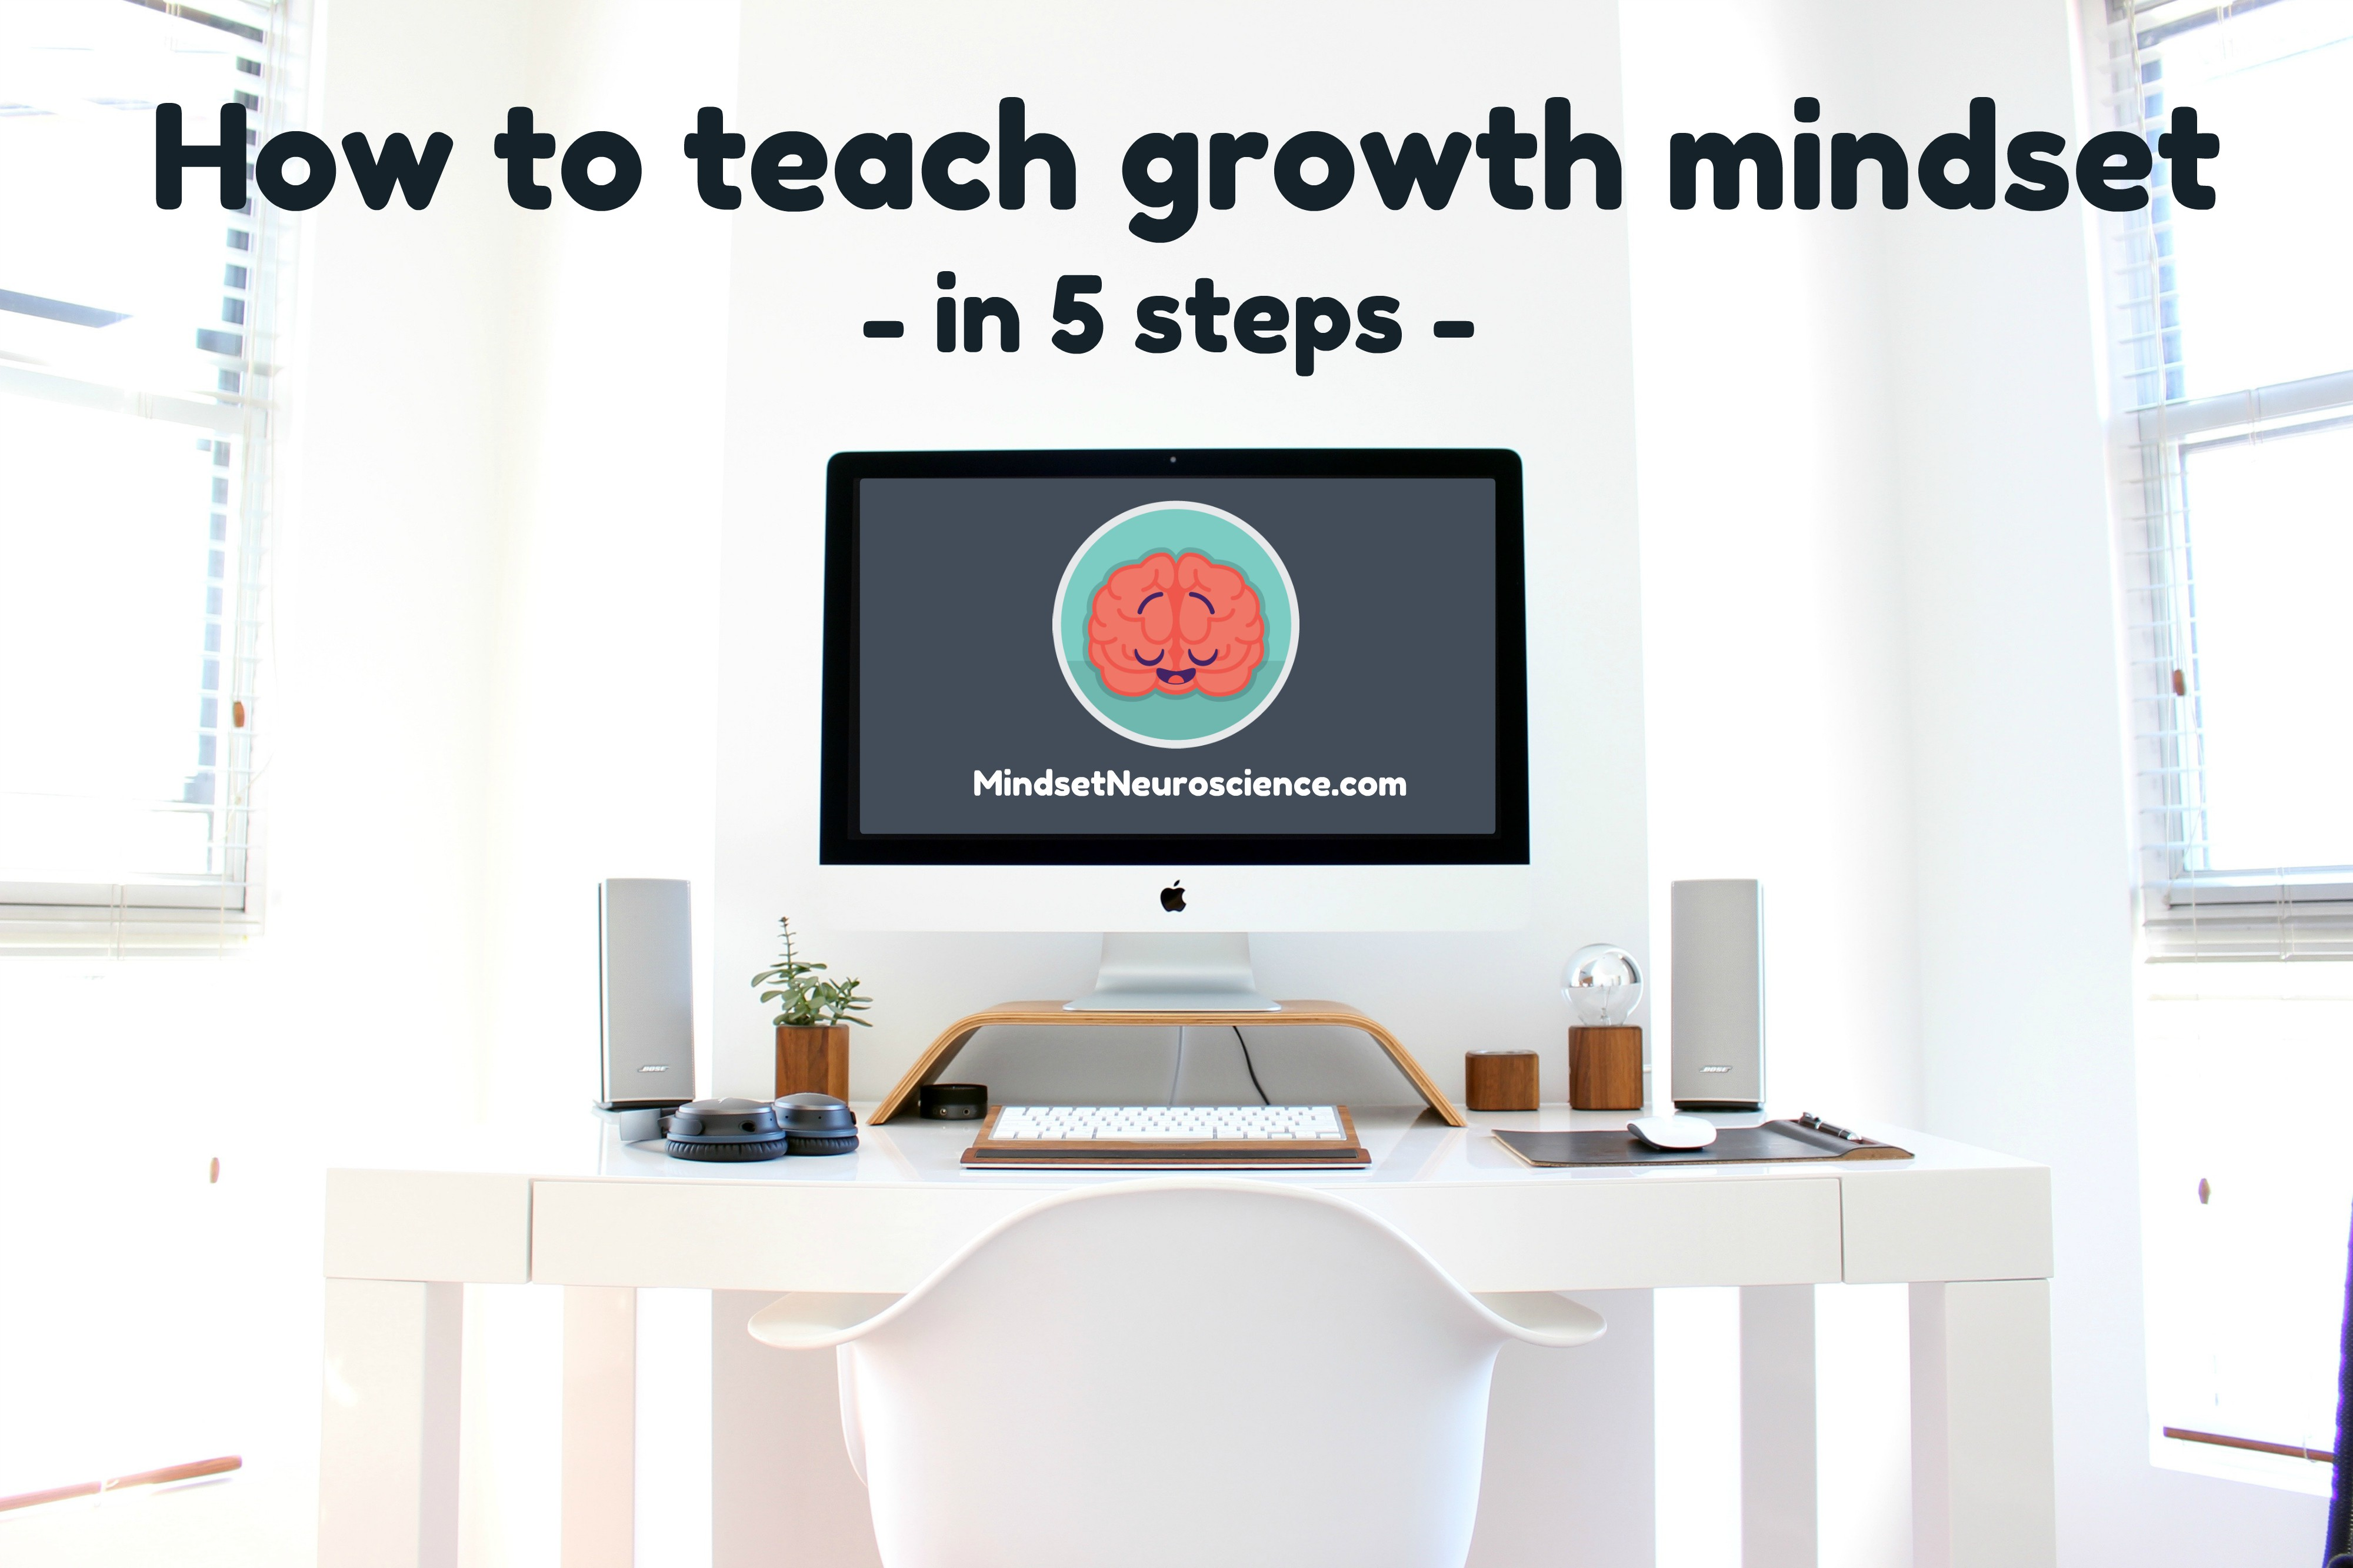 How to teach growth mindset in 5 steps